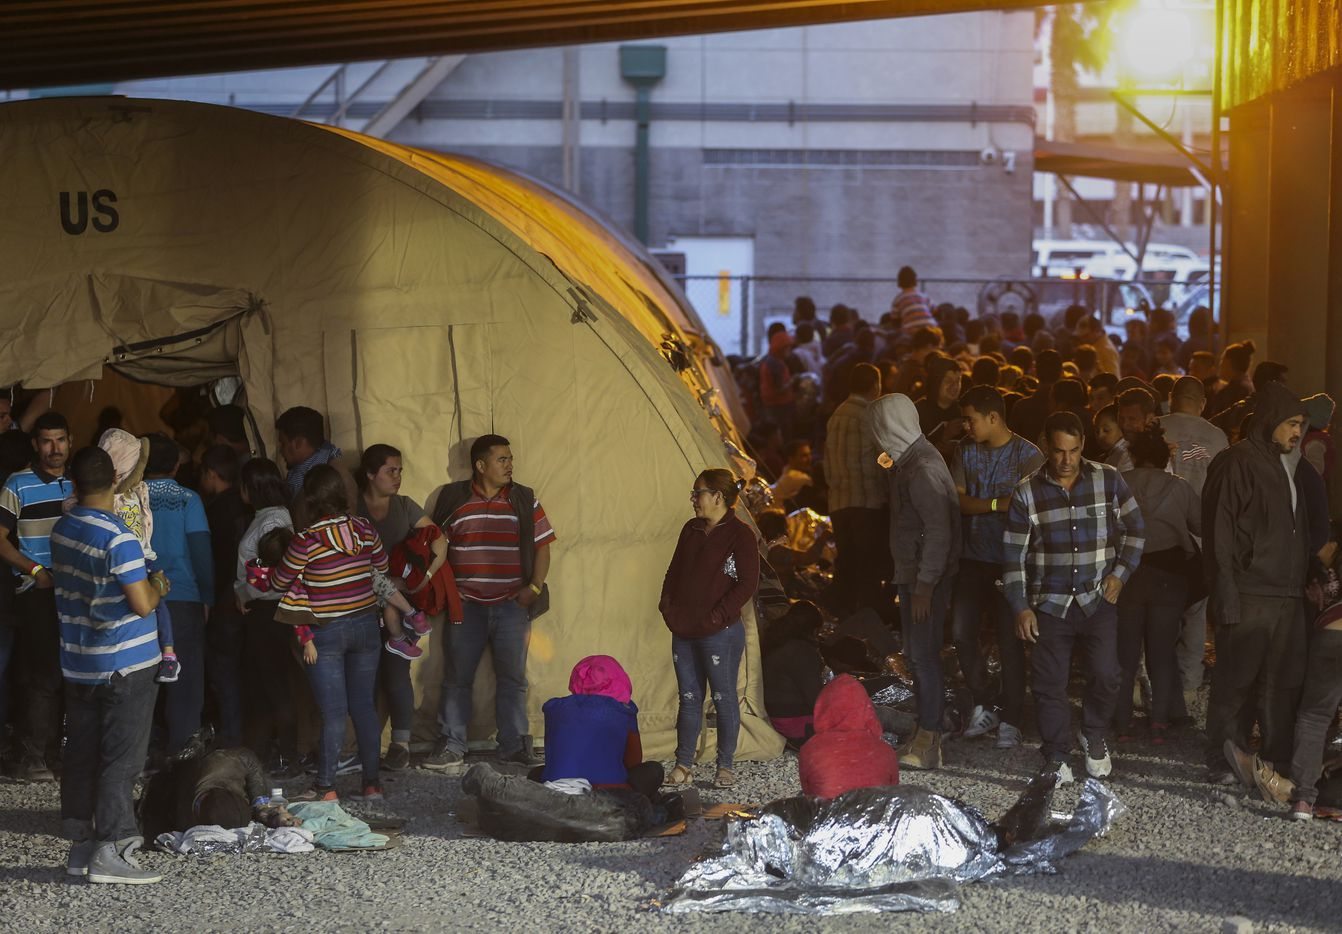 Some migrants slept outside on gravel, provided only thin Mylar blankets for warmth.